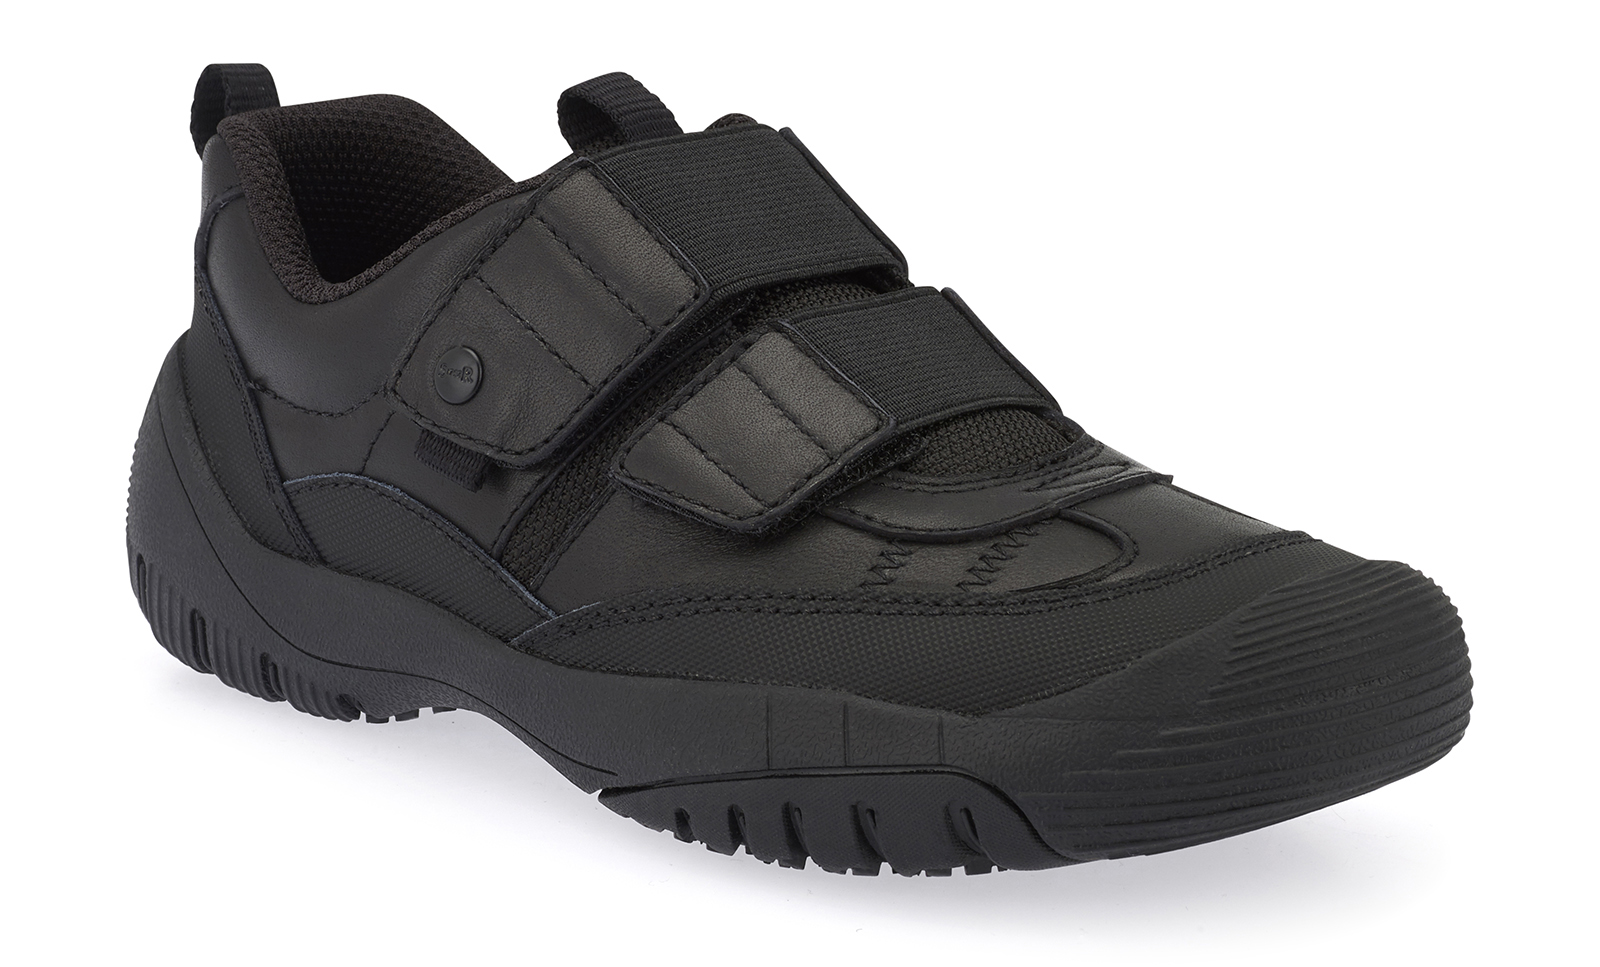 620aef1531 Fearless Leather Riptape Active School Shoes, £52.99, Start-Rite  (Start-Rite/PA)